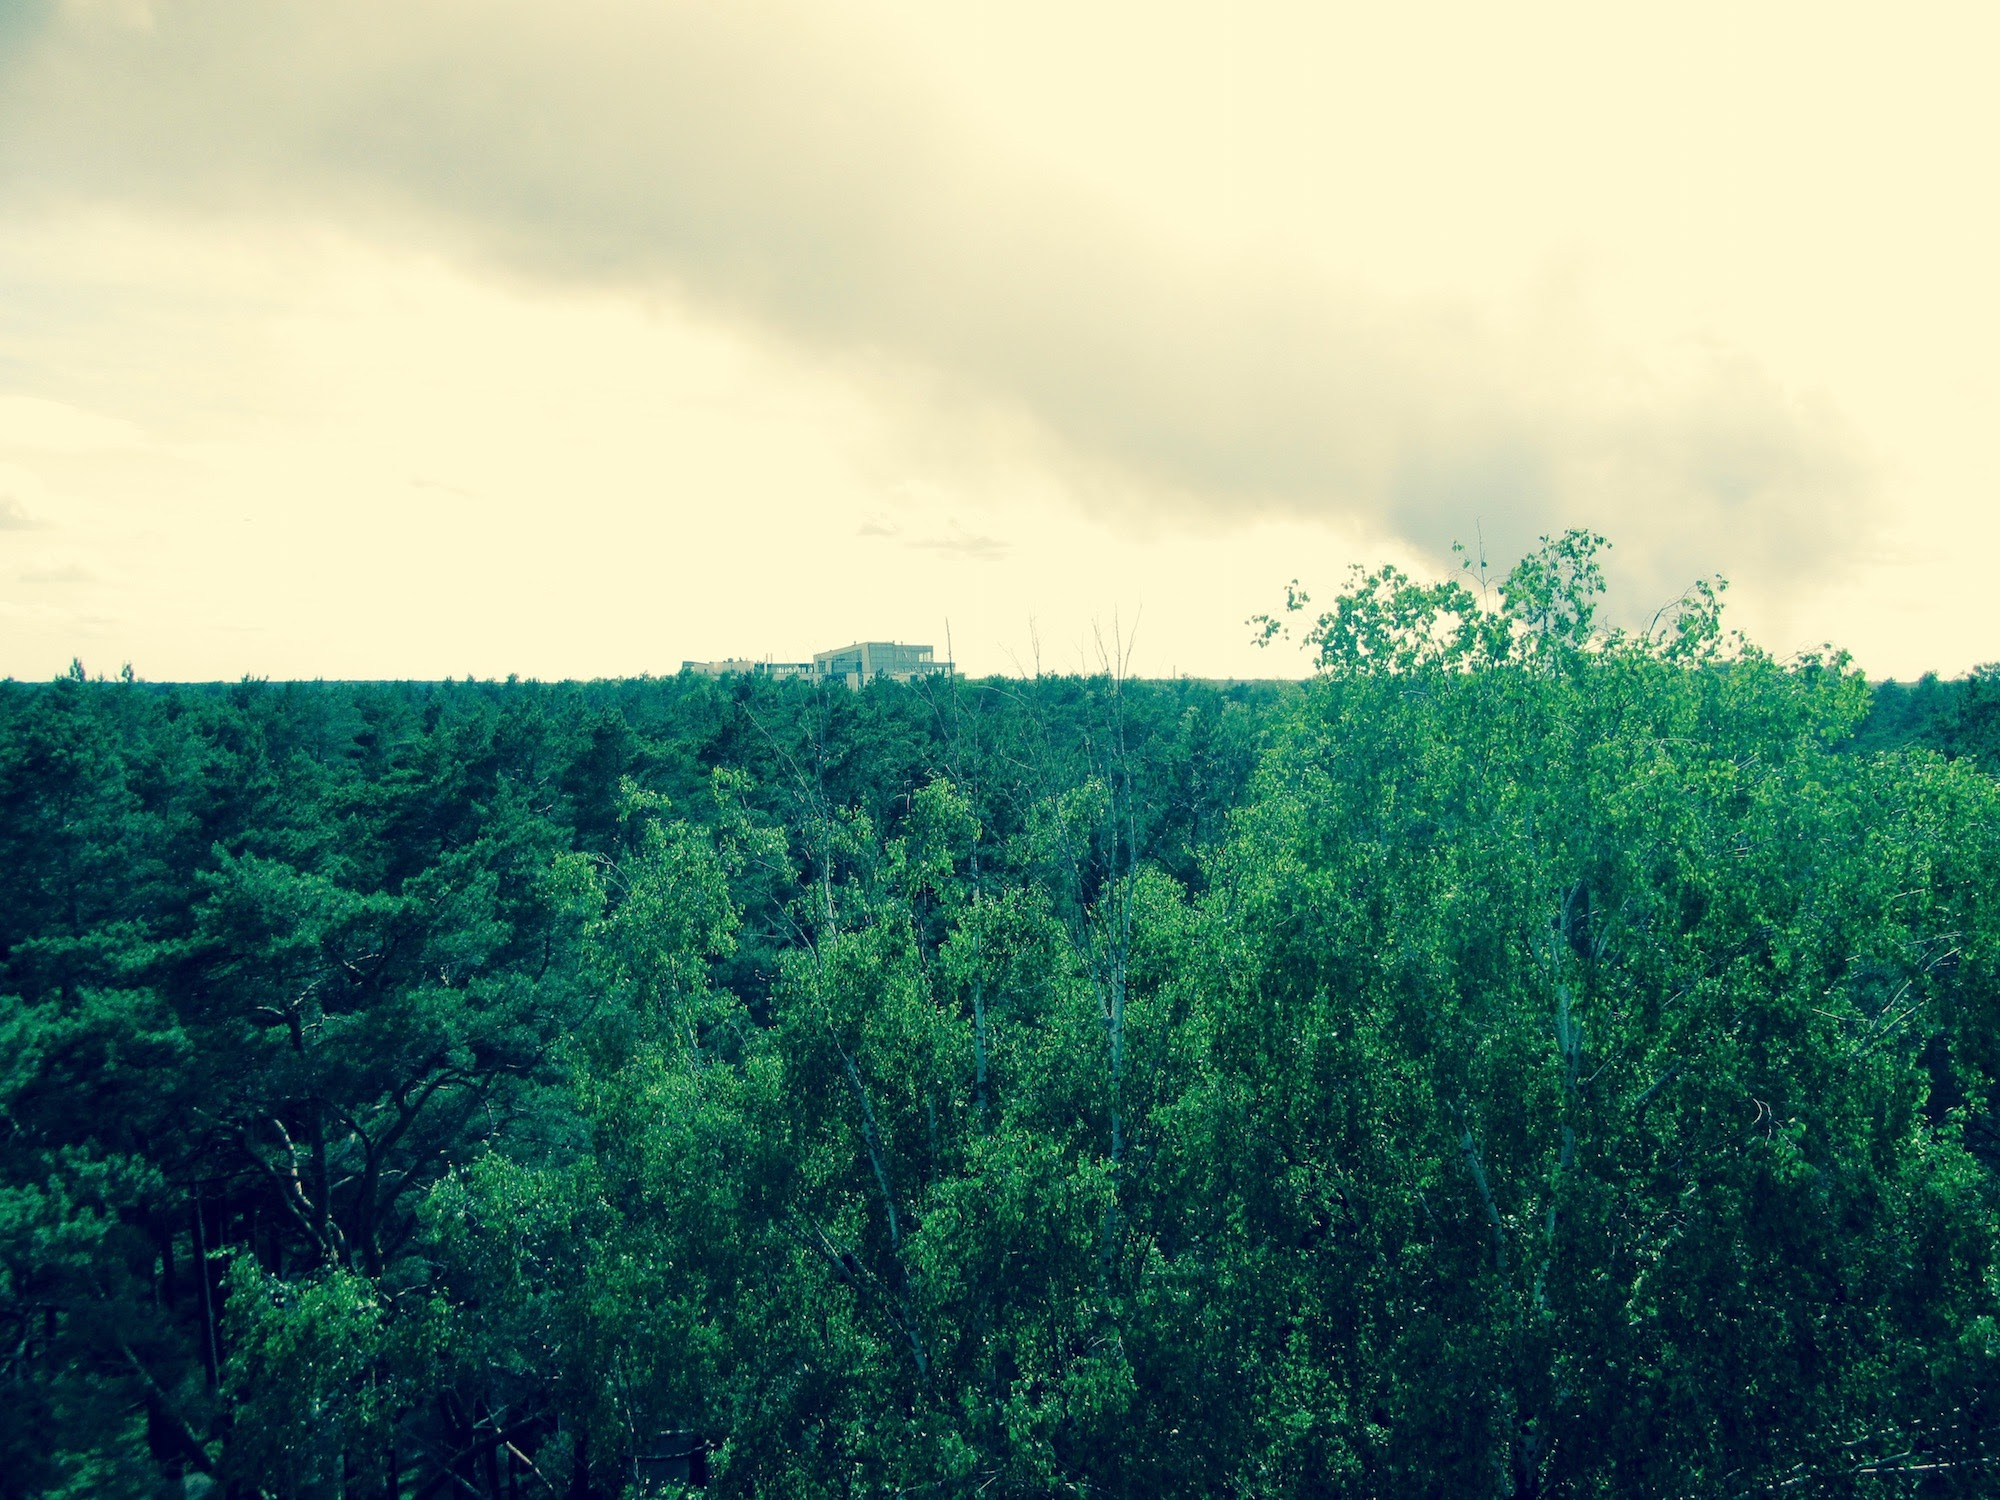 View of Jurmala from the viewing tower - such a green city - Urban Treetops